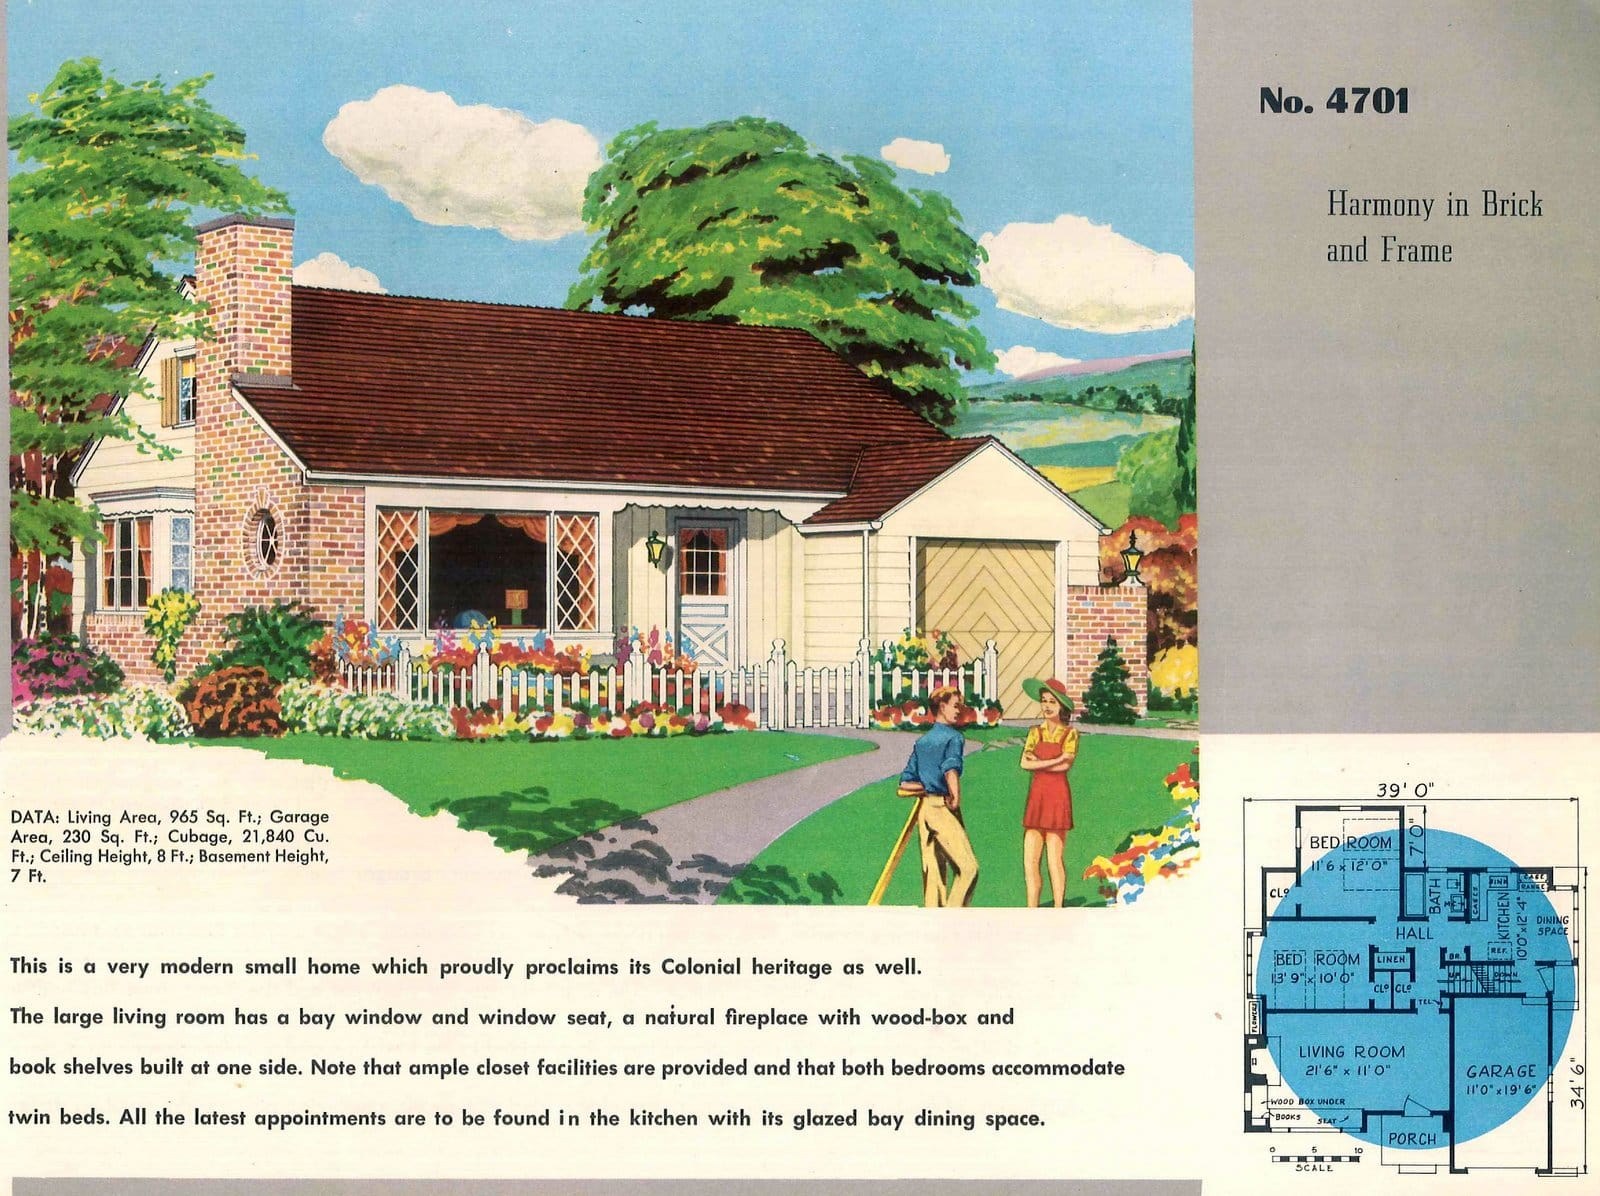 Vintage 50s small starter home designs from 1950 (10)